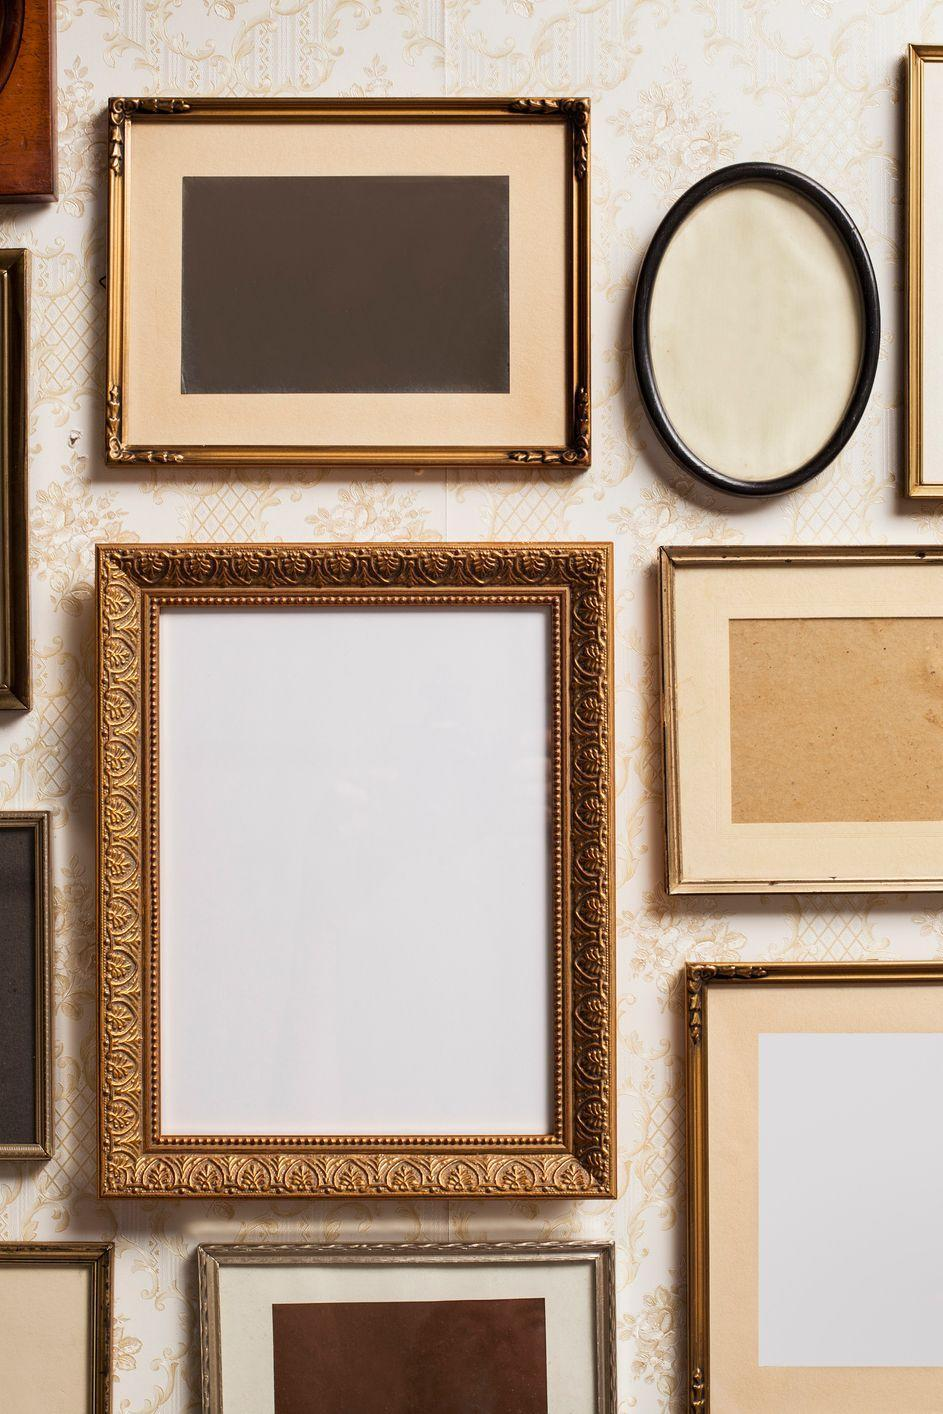 """<p>They may not be the most elegant options, but for <a href=""""https://www.goodhousekeeping.com/home/craft-ideas/how-to/g1473/empty-frame-diy/"""" rel=""""nofollow noopener"""" target=""""_blank"""" data-ylk=""""slk:basic colored frames"""" class=""""link rapid-noclick-resp"""">basic colored frames</a> (like for your <a href=""""https://www.goodhousekeeping.com/home/decorating-ideas/g2432/alternative-picture-frames/"""" rel=""""nofollow noopener"""" target=""""_blank"""" data-ylk=""""slk:wall collage"""" class=""""link rapid-noclick-resp"""">wall collage</a>), dollar stores let you stock up for much less. </p>"""